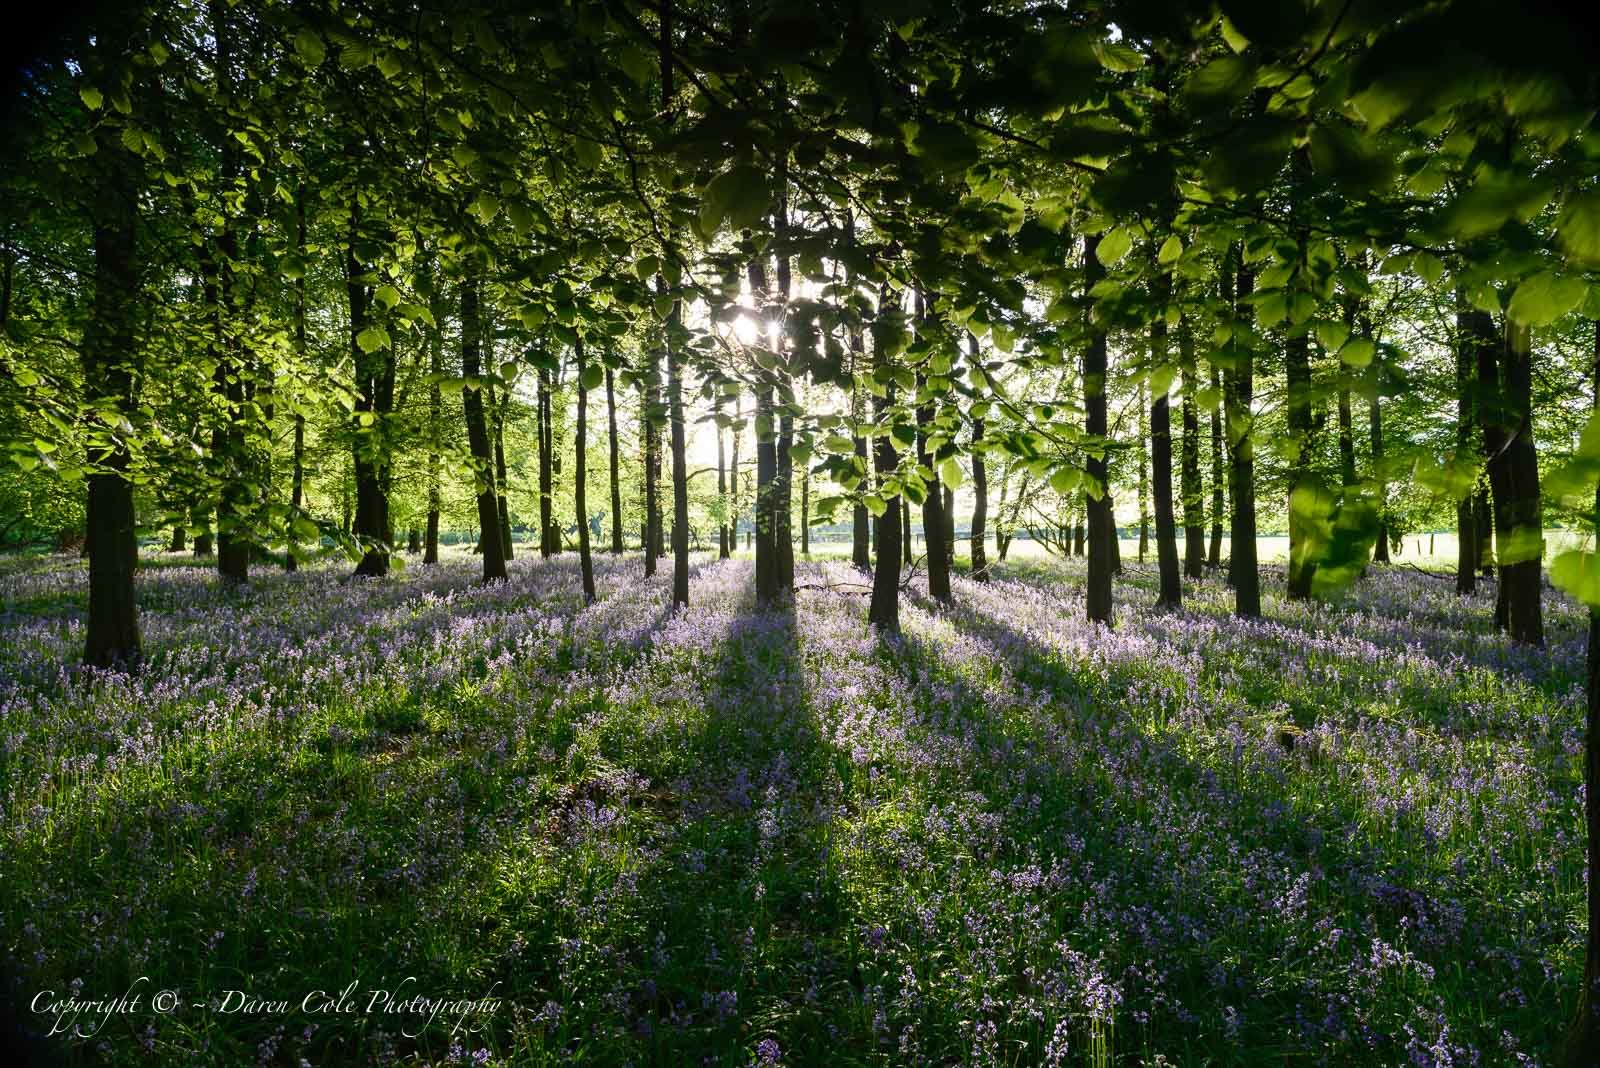 Backlit Beech Trees and Bluebells- Long Shadows